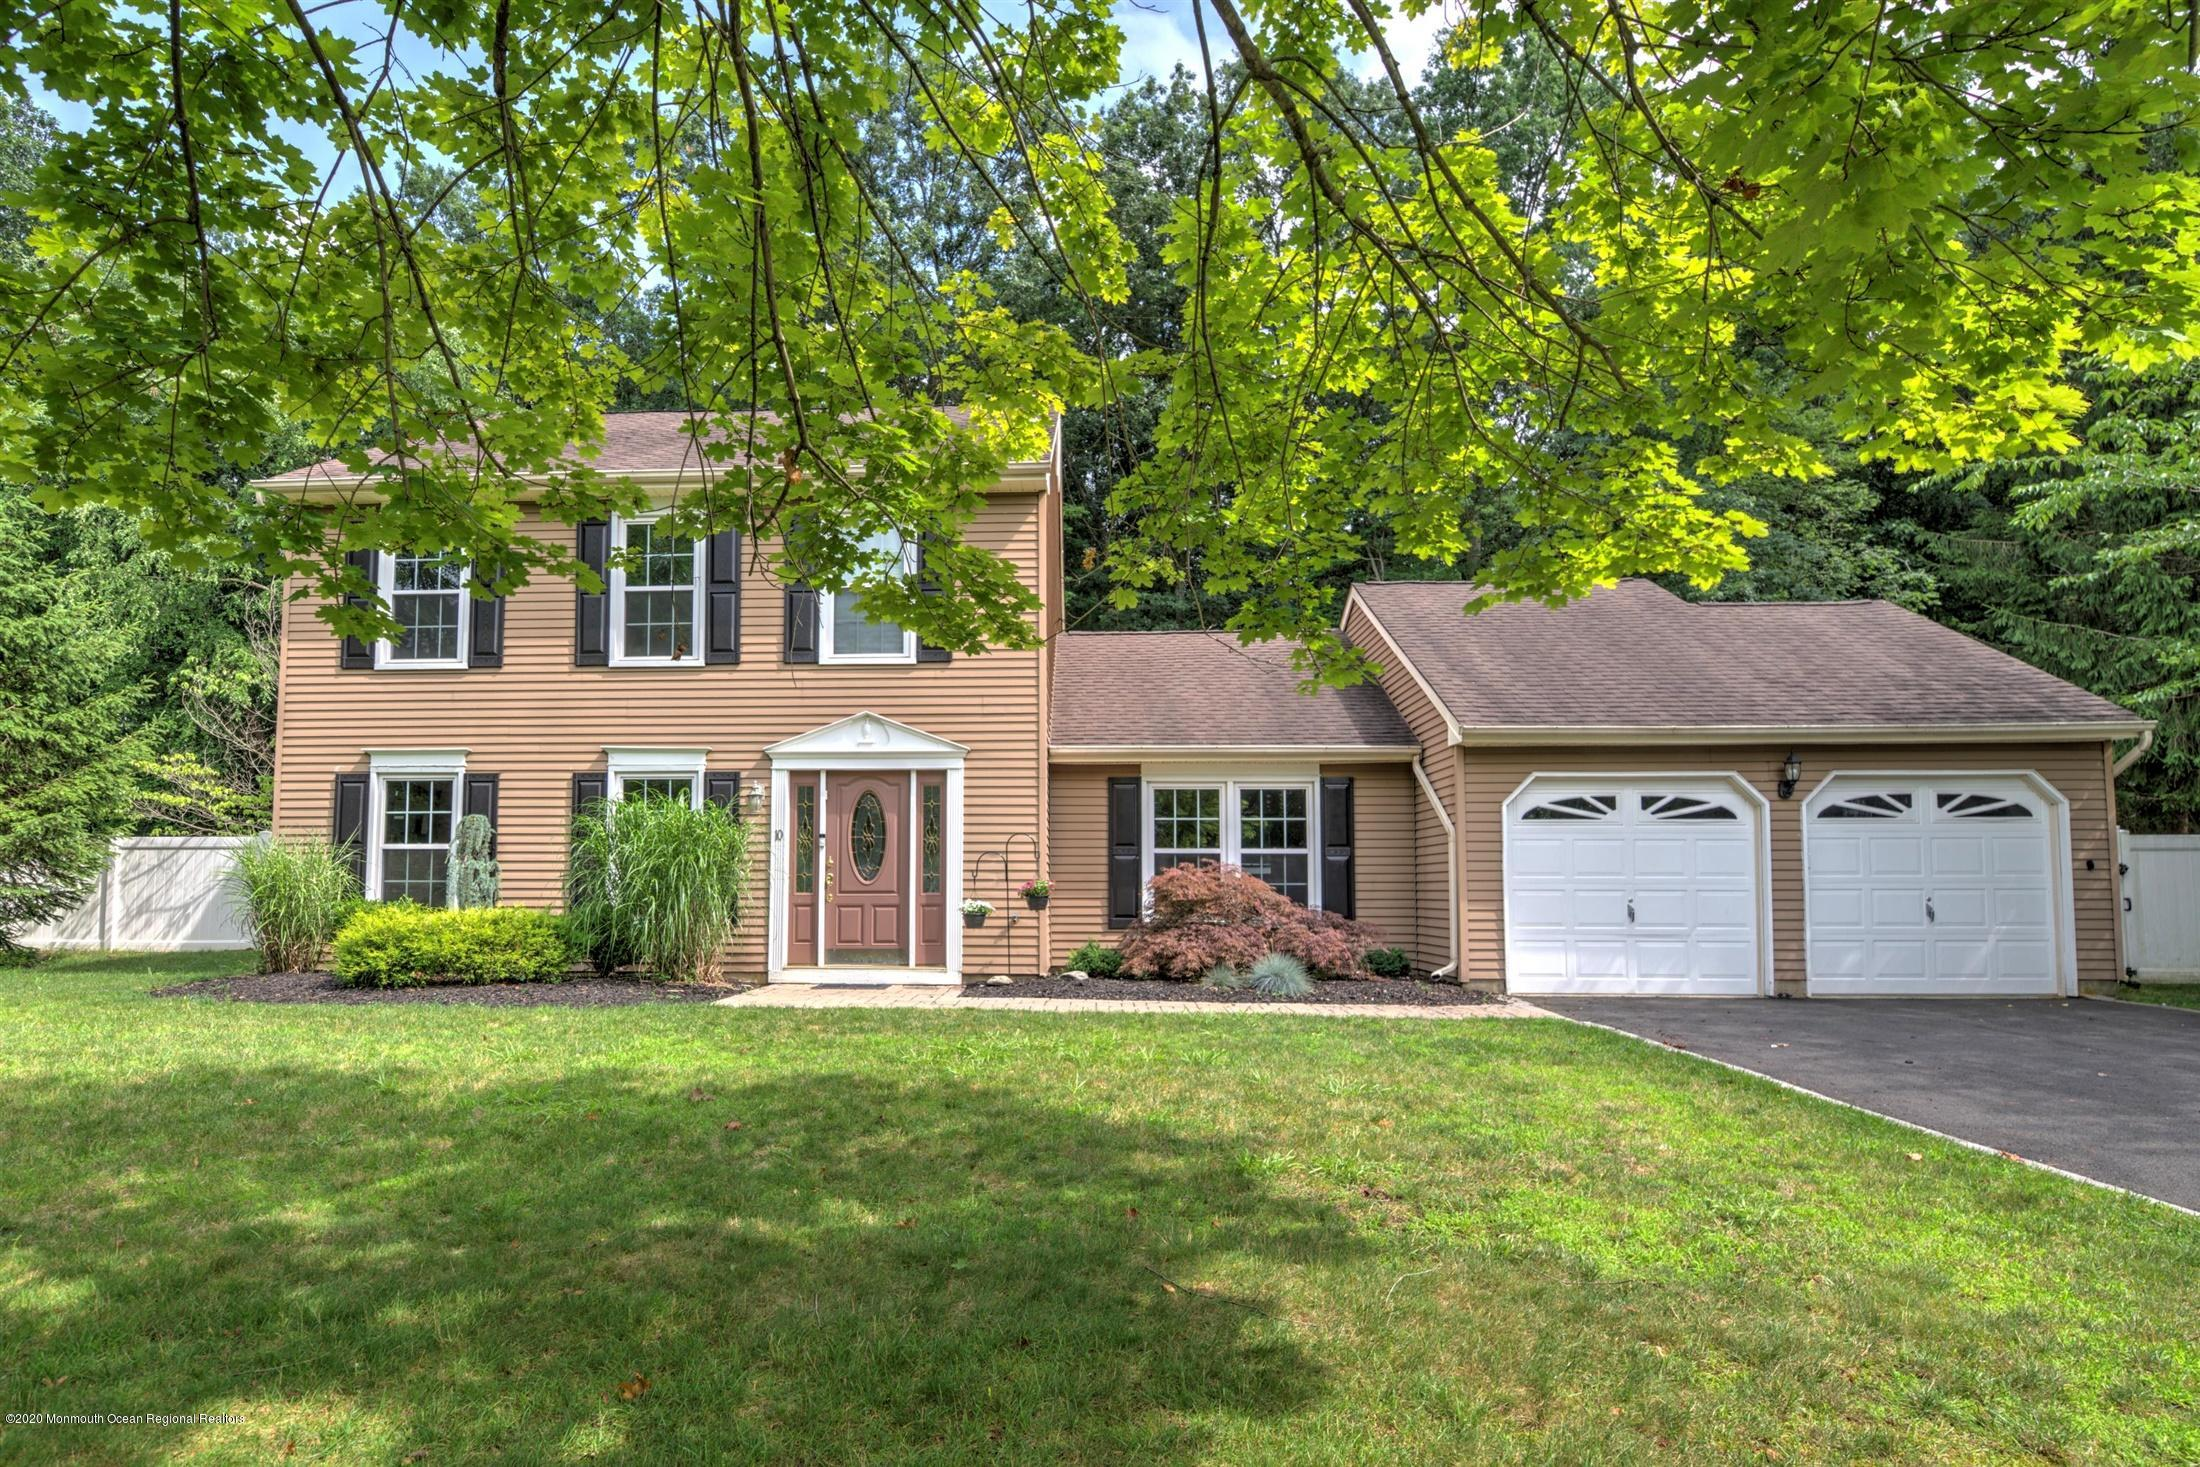 10  Prides Lane,  Marlboro, NJ